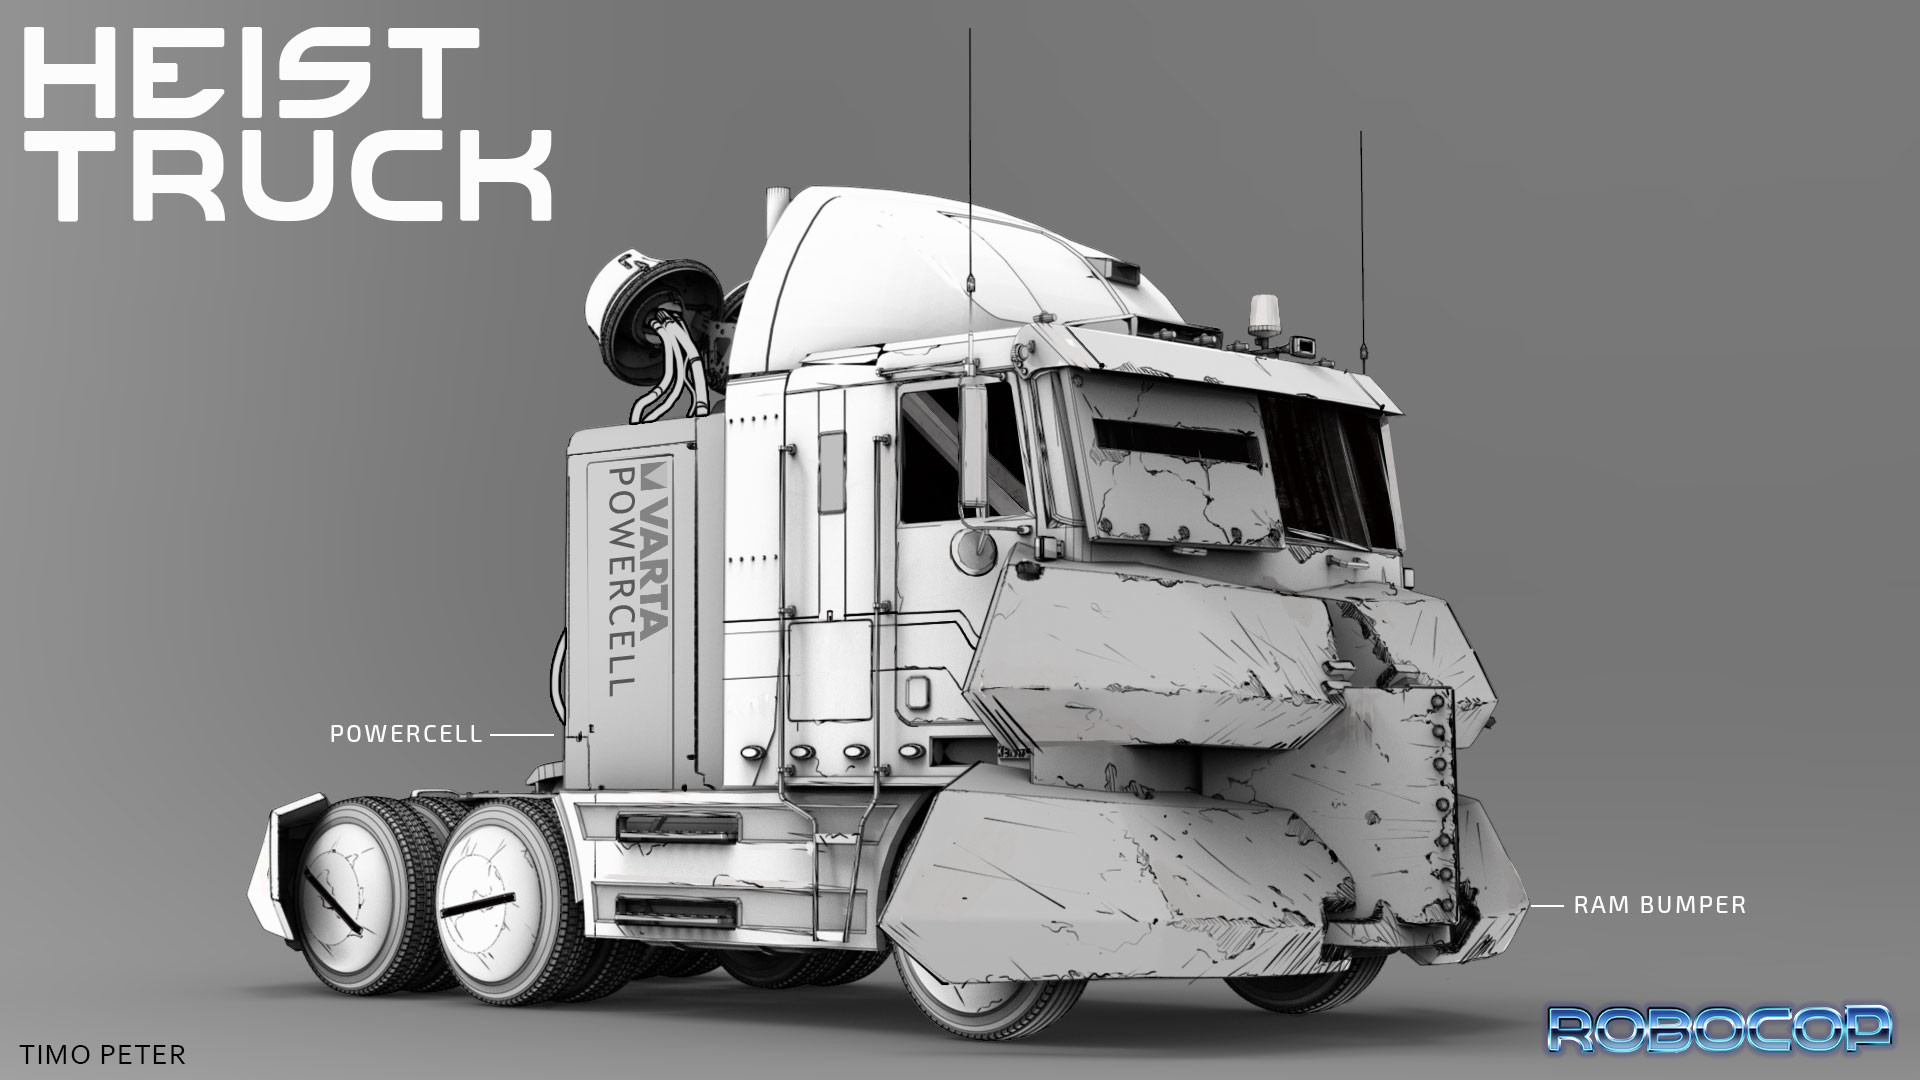 The Heist truck.  for some parts of the truck I used a few kitbash parts of klickstop. Check him out on gumroad he has some great stuff there.